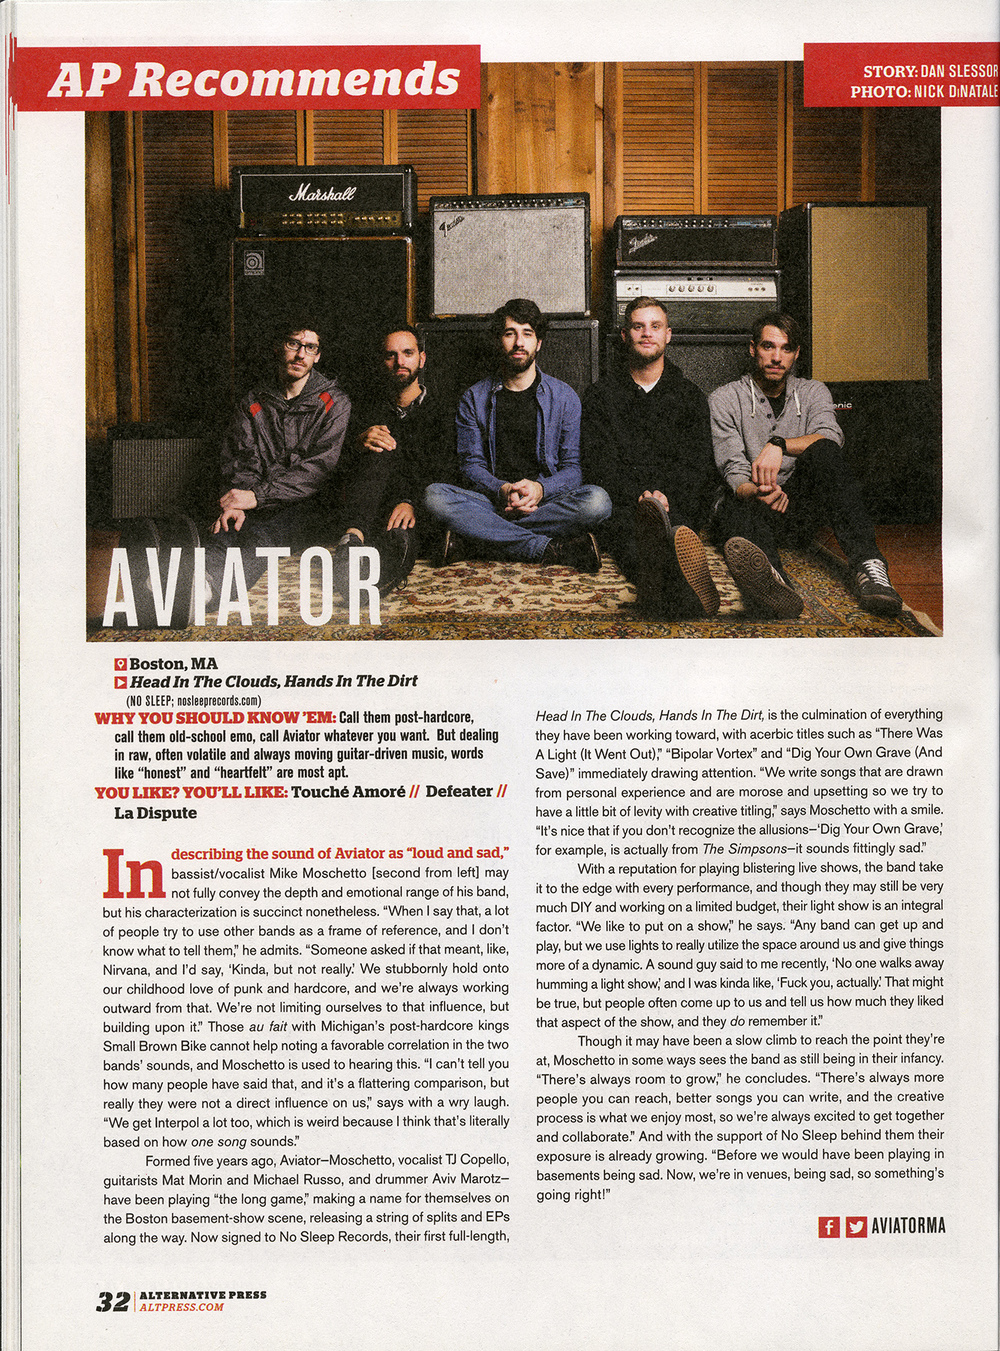 Alternative Press 319 - February, 2015  AP Recommends  Aviator, pg. 32